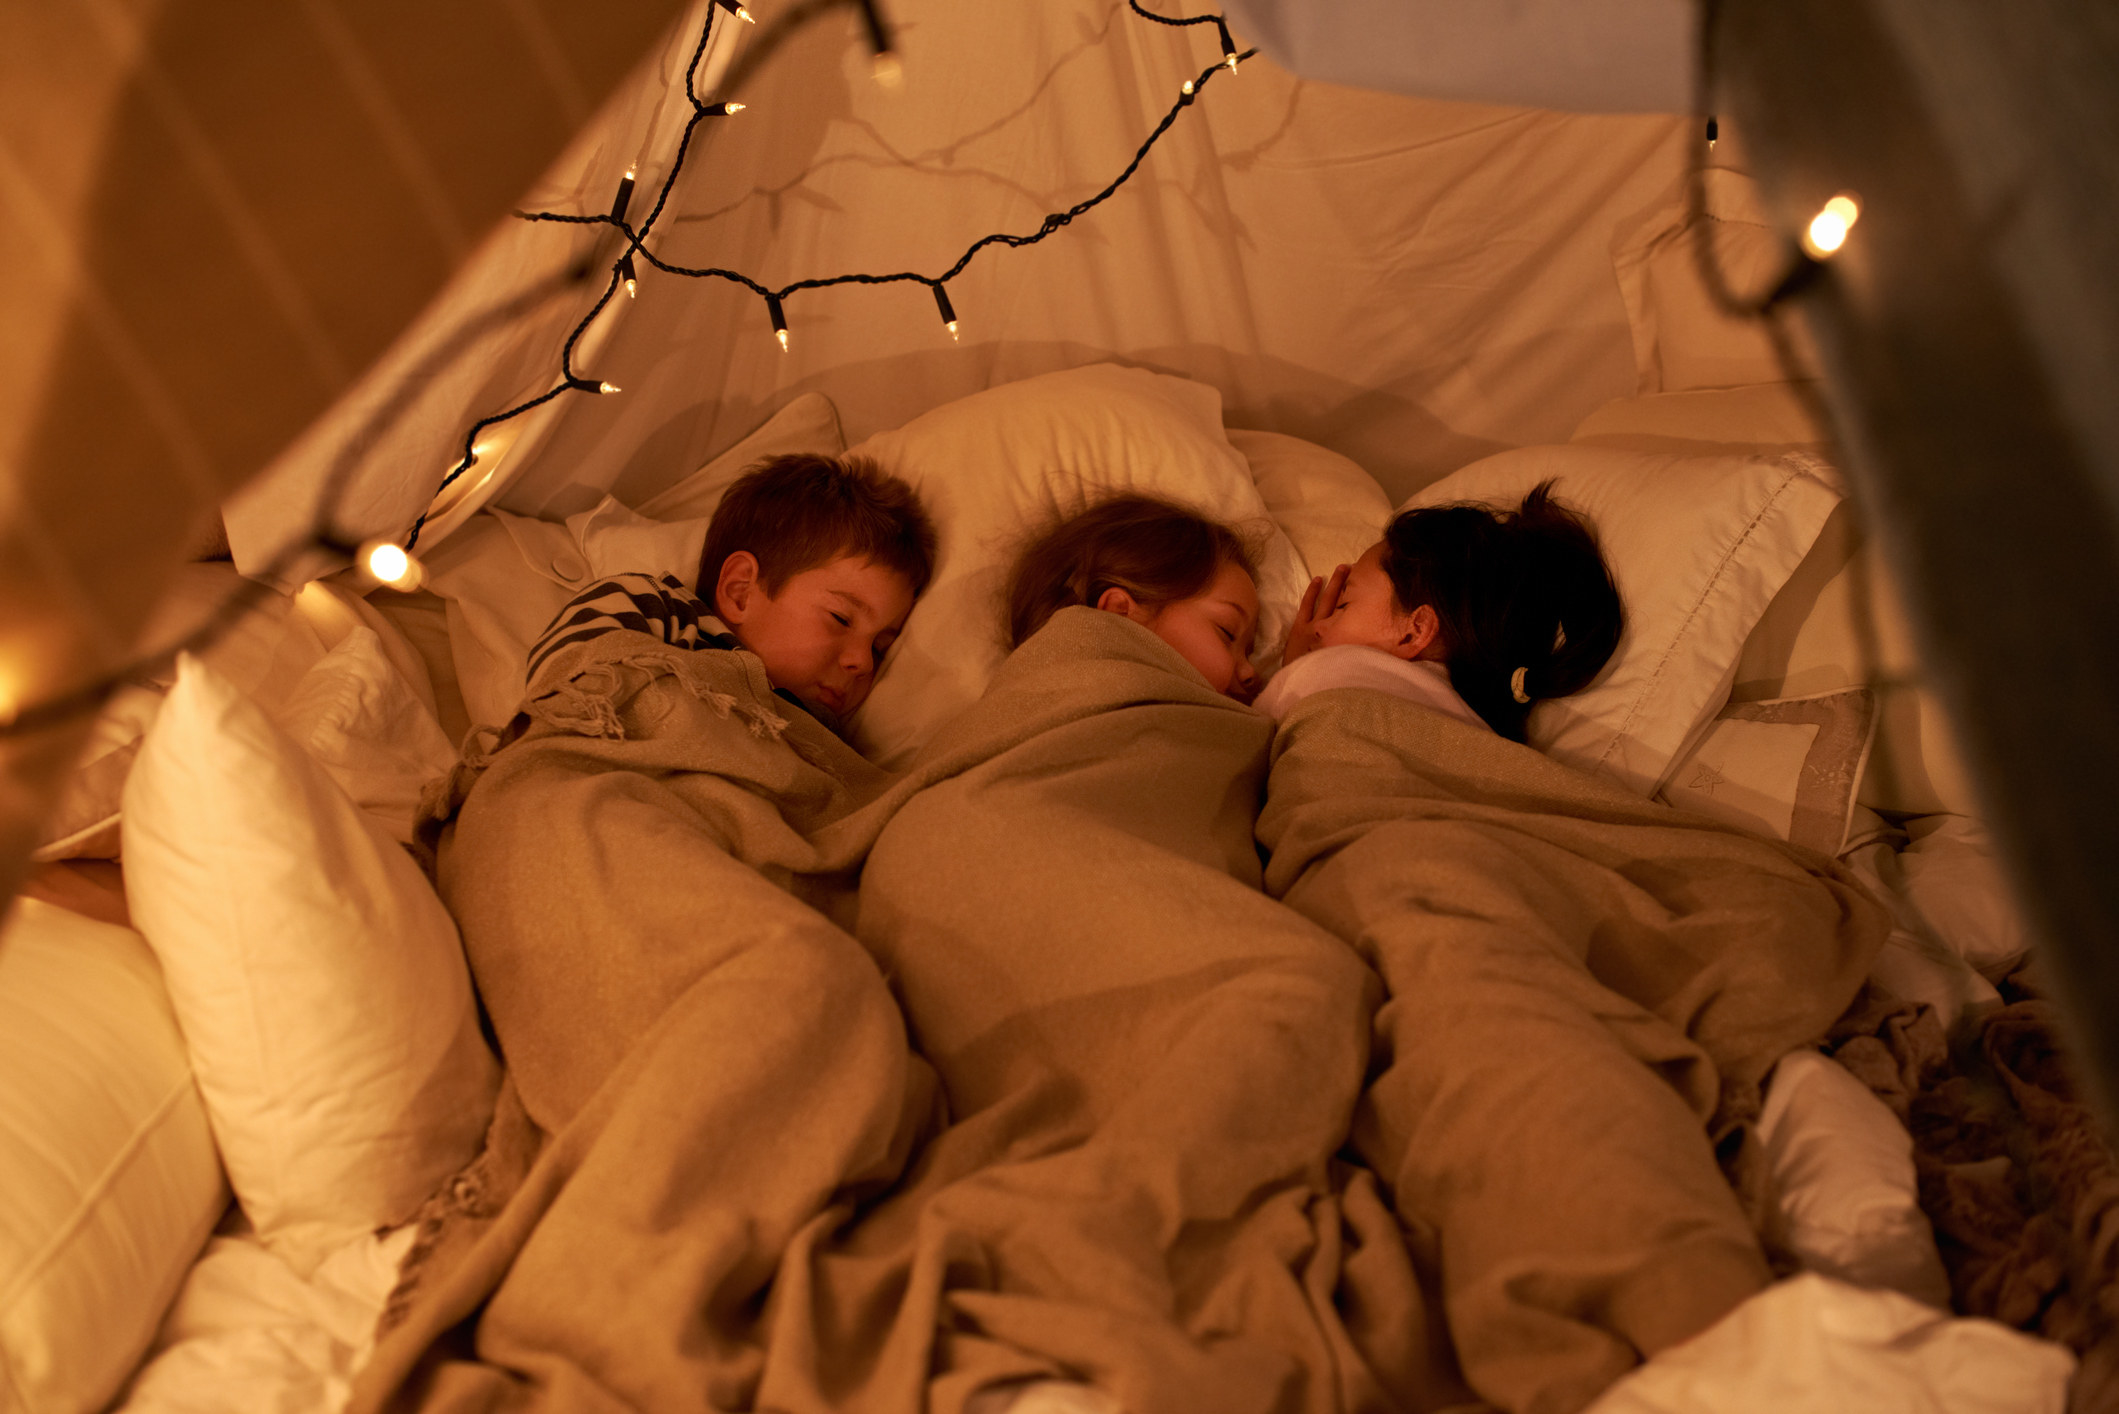 Children asleep surrounded by pillows and blankets in fort with string lights.